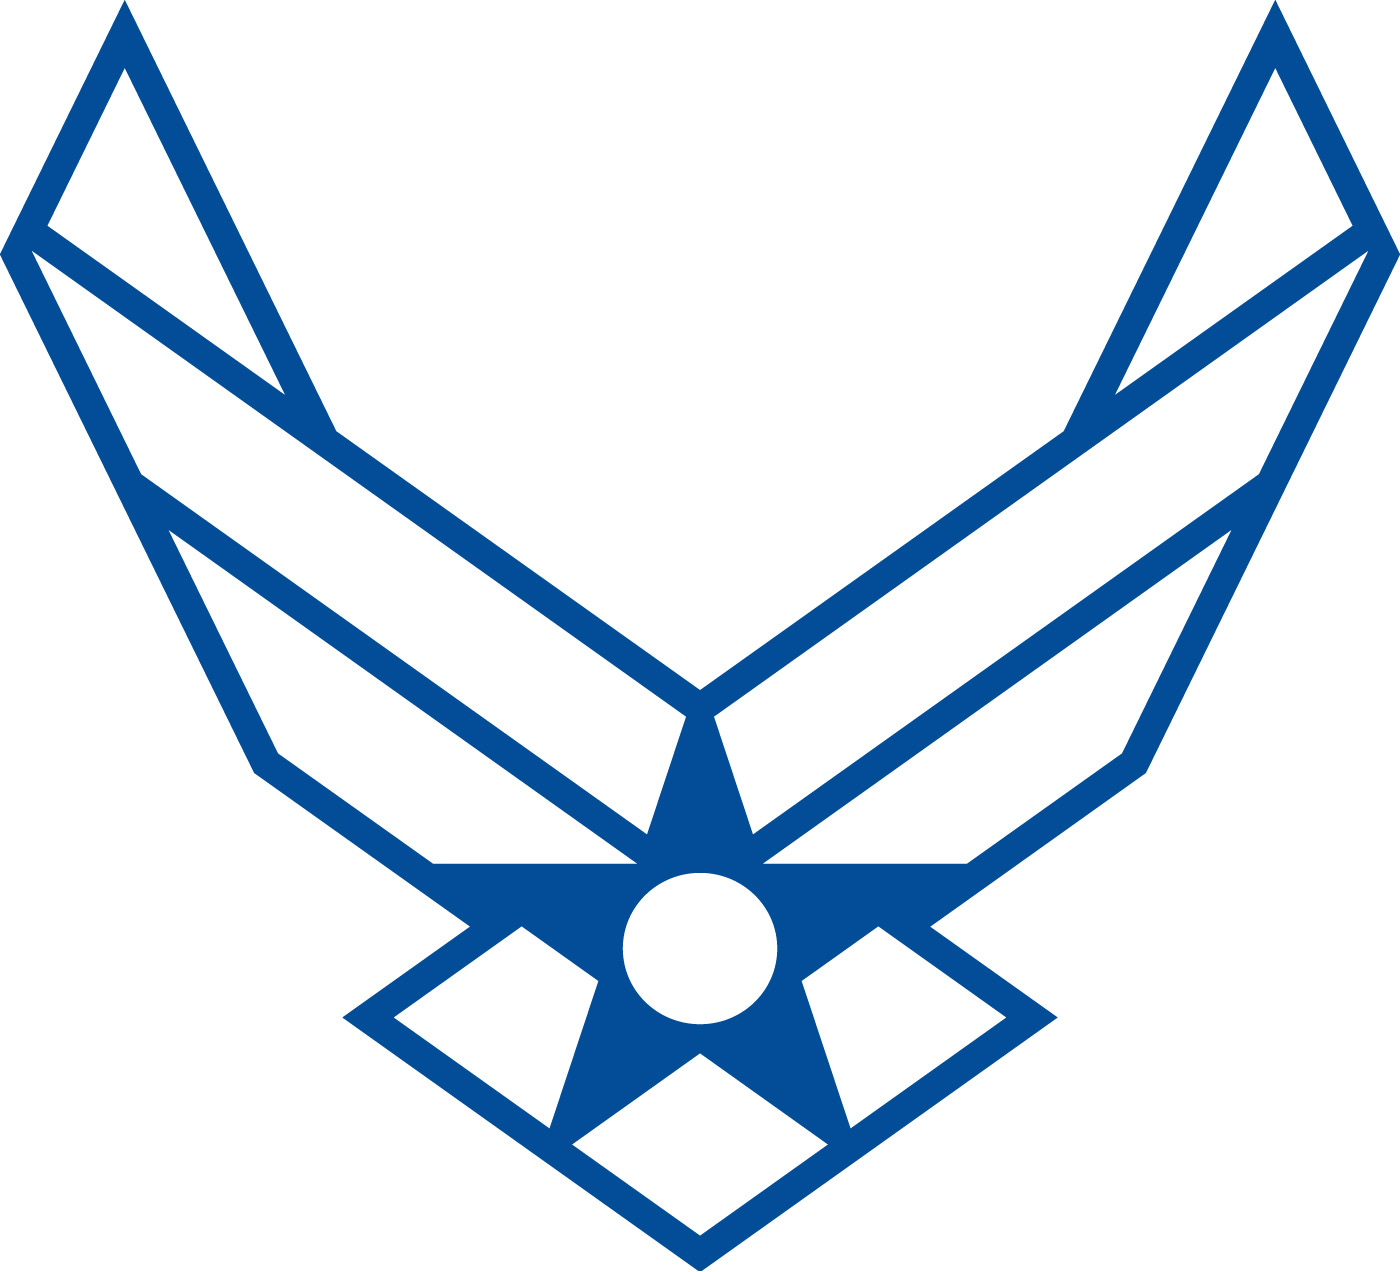 military branches symbols coloring pages - photo#23